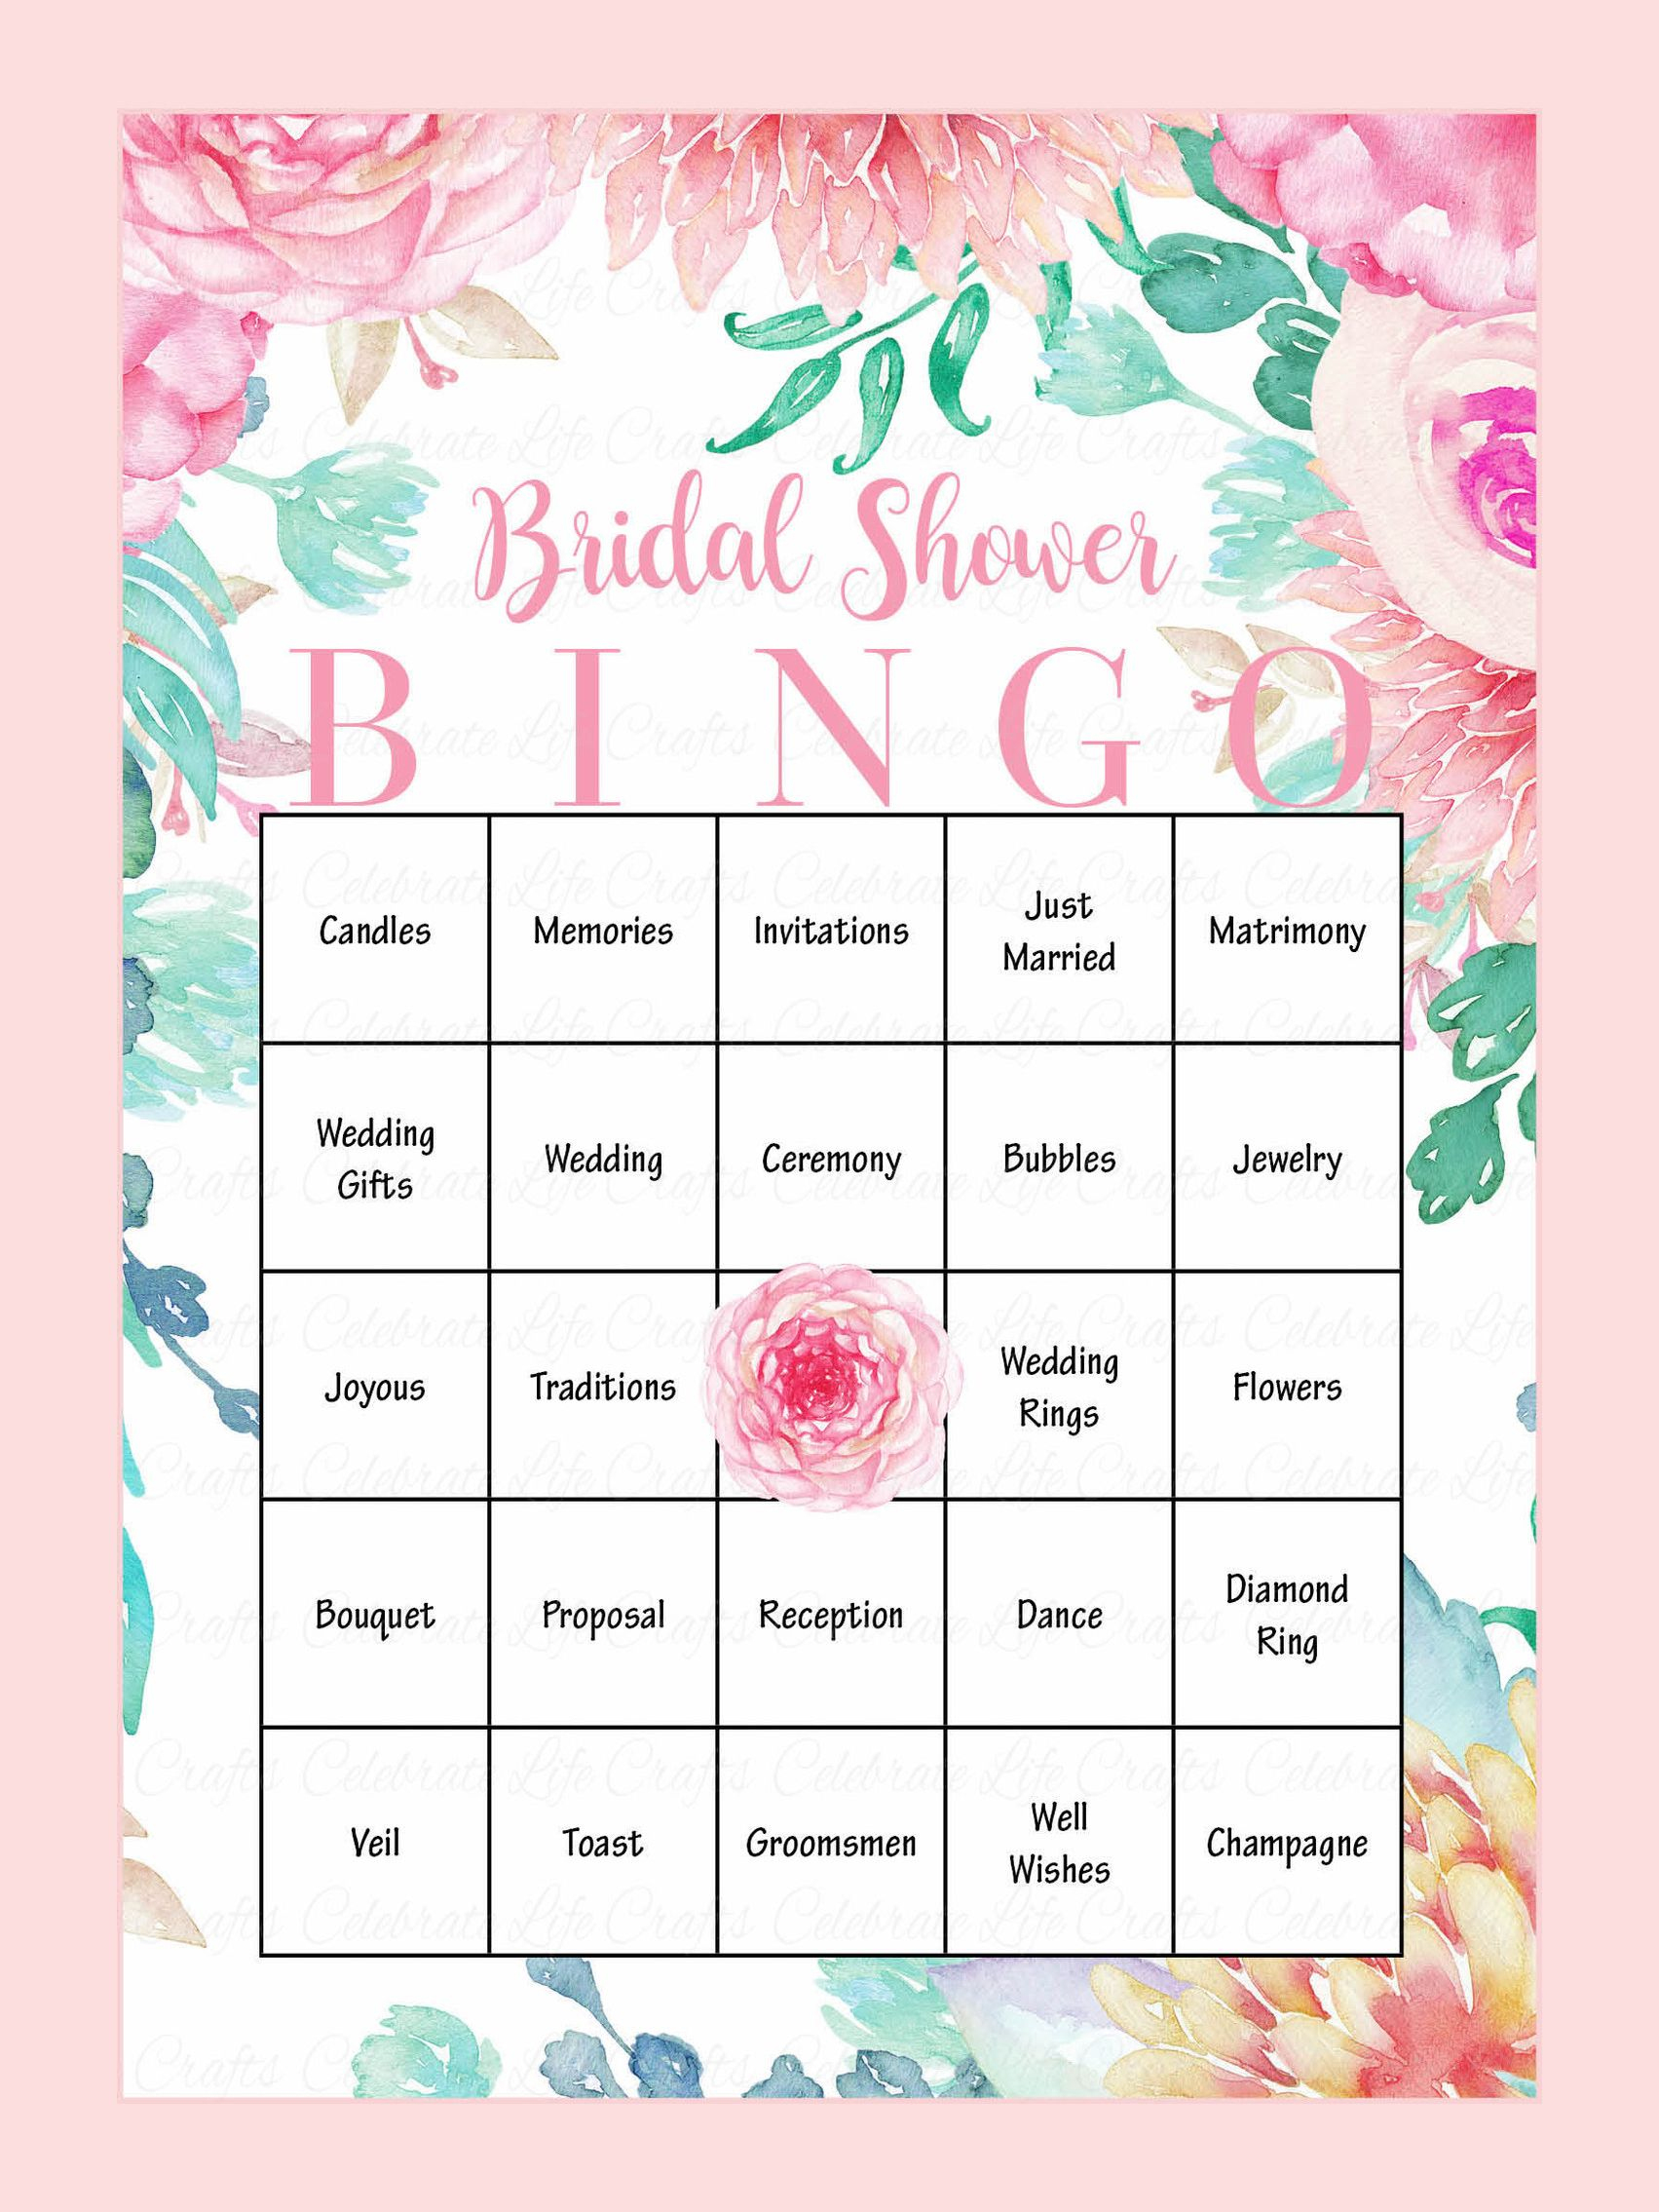 Printable Bridal Shower Bingo Cards | Bridal Showers | Bridal Shower - Free Printable Bridal Shower Bingo